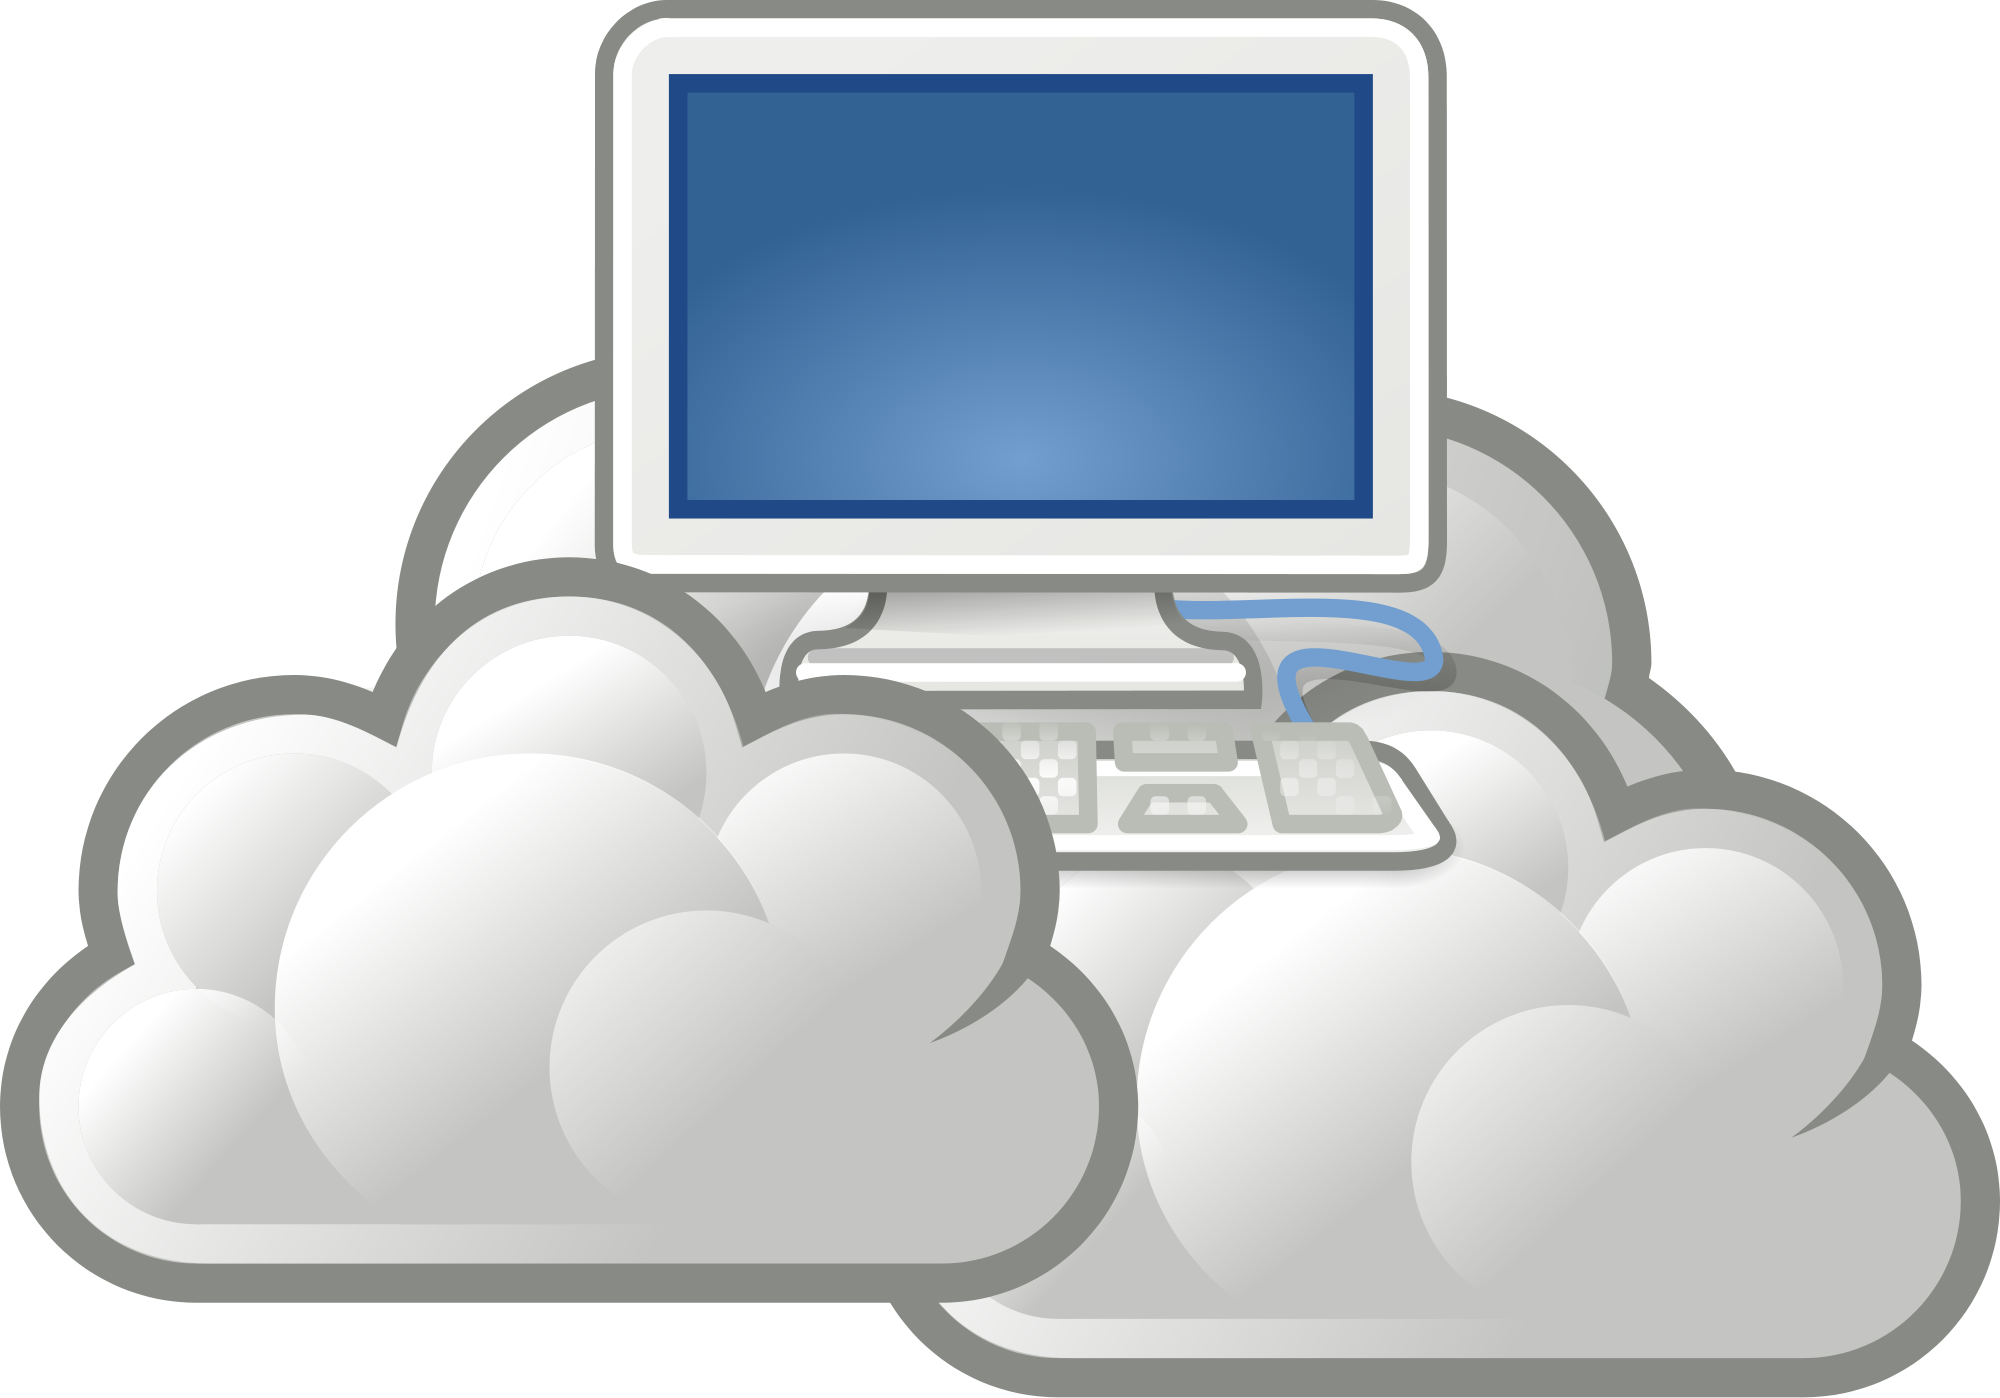 Computers drawing cloud computing. How does work academy